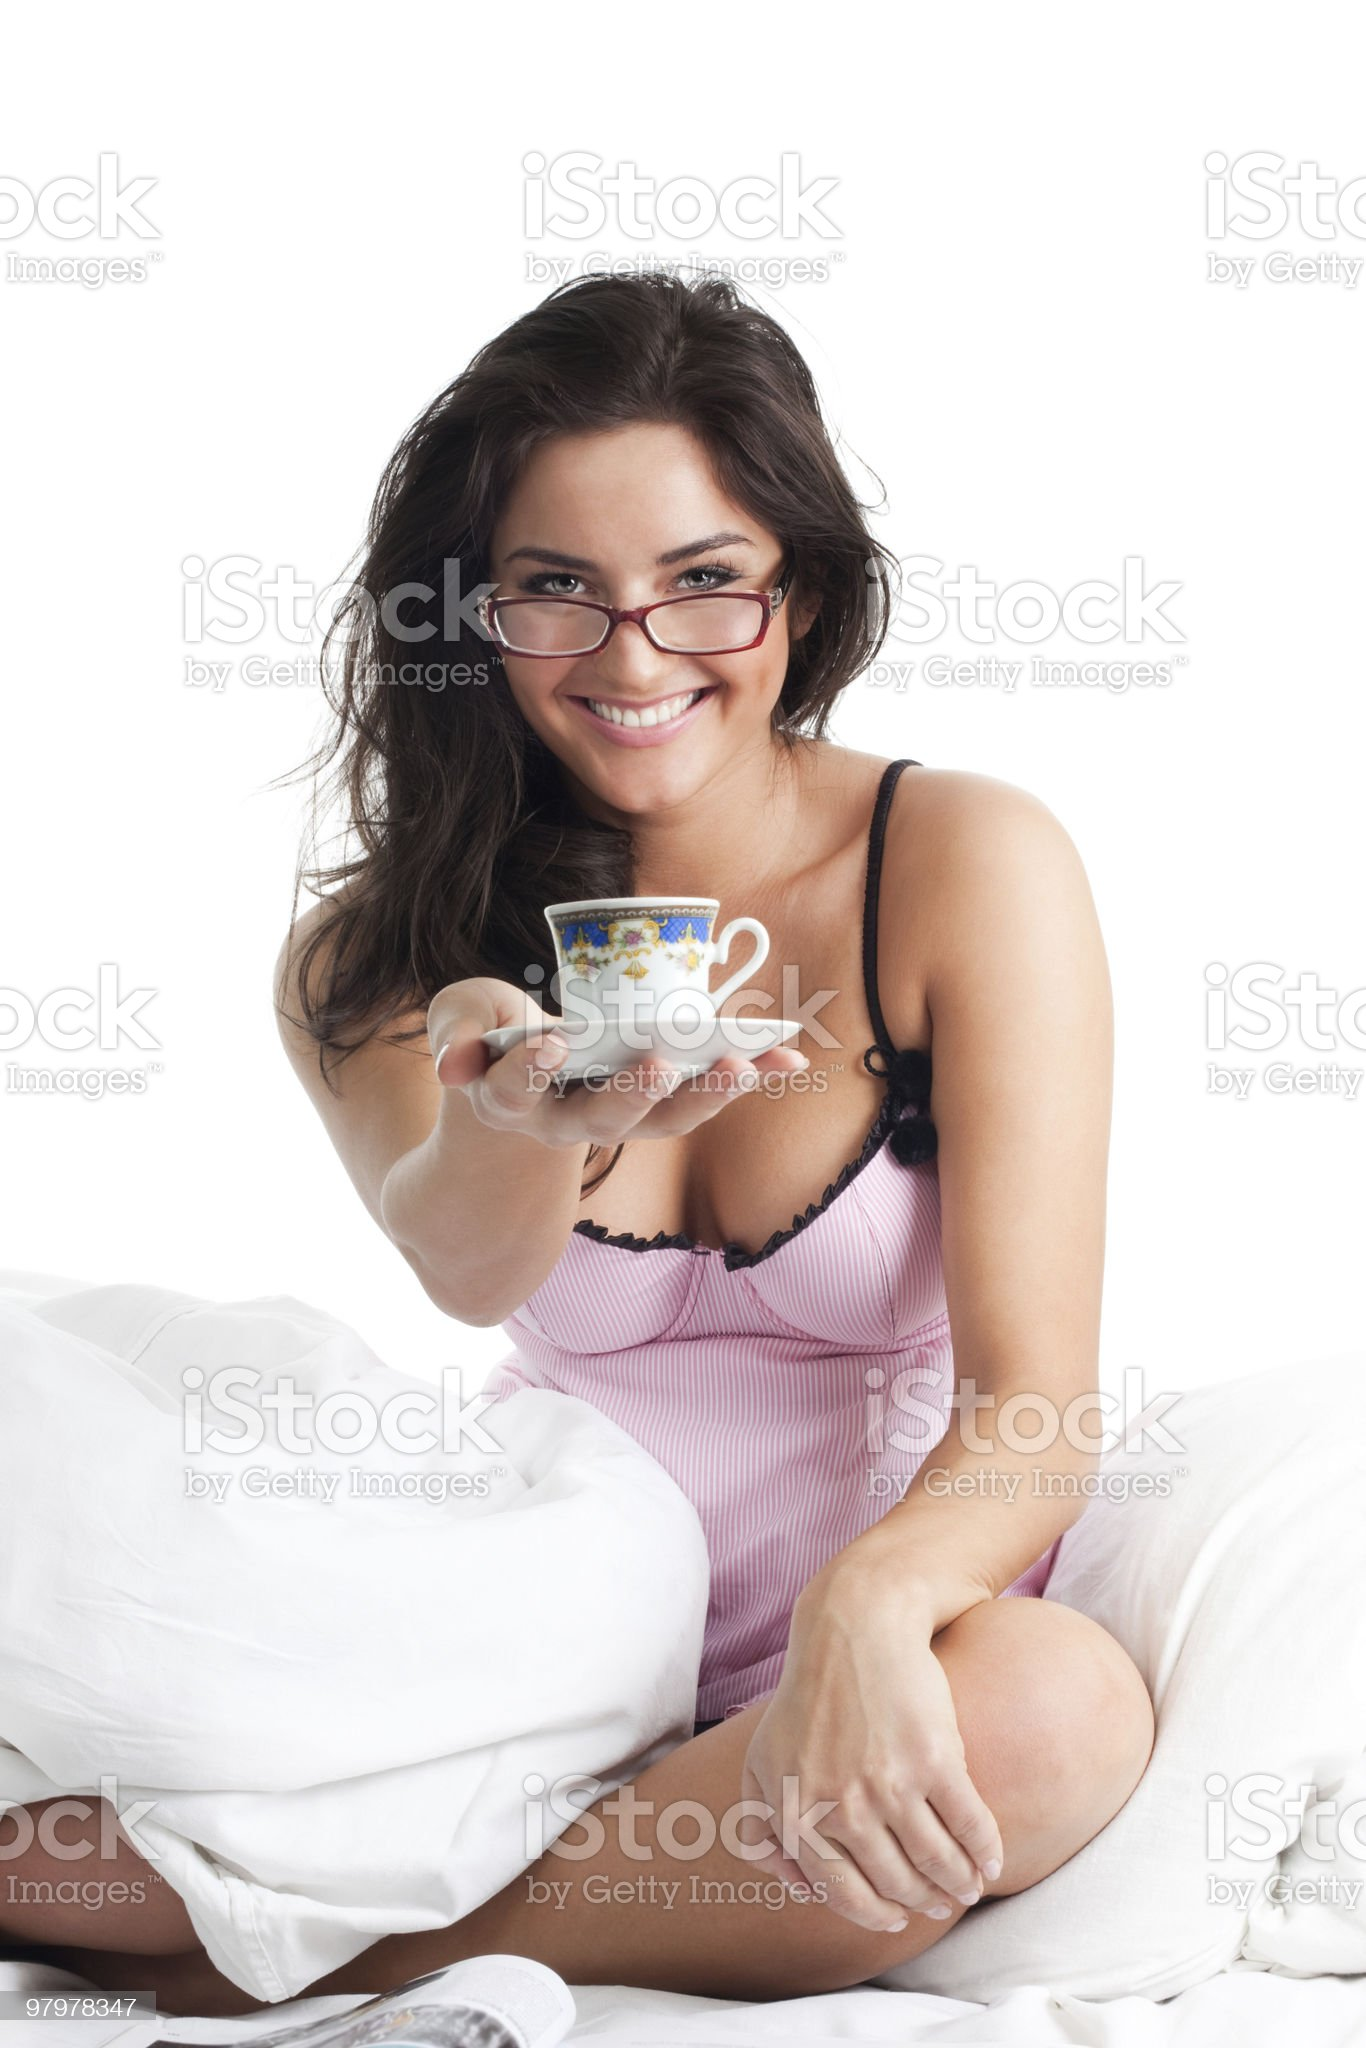 Woman smile and give cup of coffee royalty-free stock photo